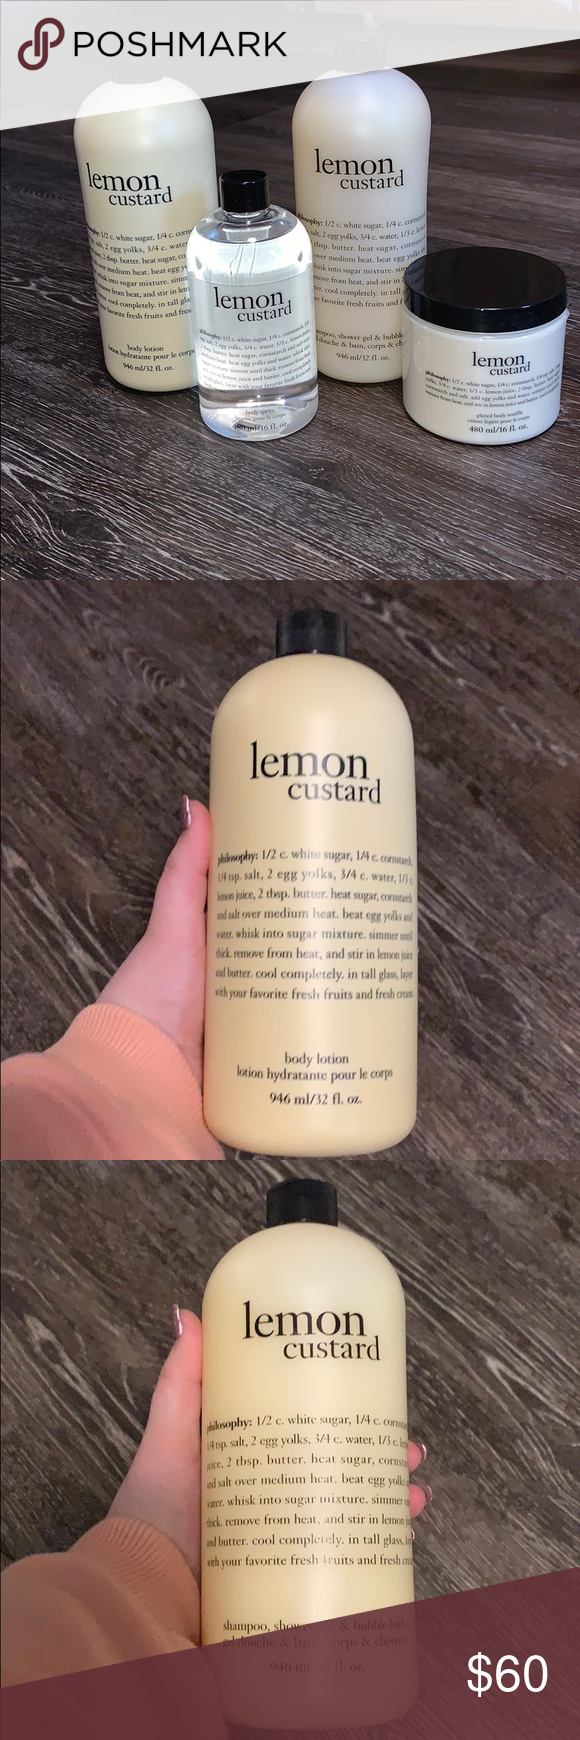 Lemon Custard Philosophy Pack This Pack Contains The Body Spritz The Glazed Body Souffle The Shampoo This Bottle Can Also Lemon Custard Custard Body Lotion